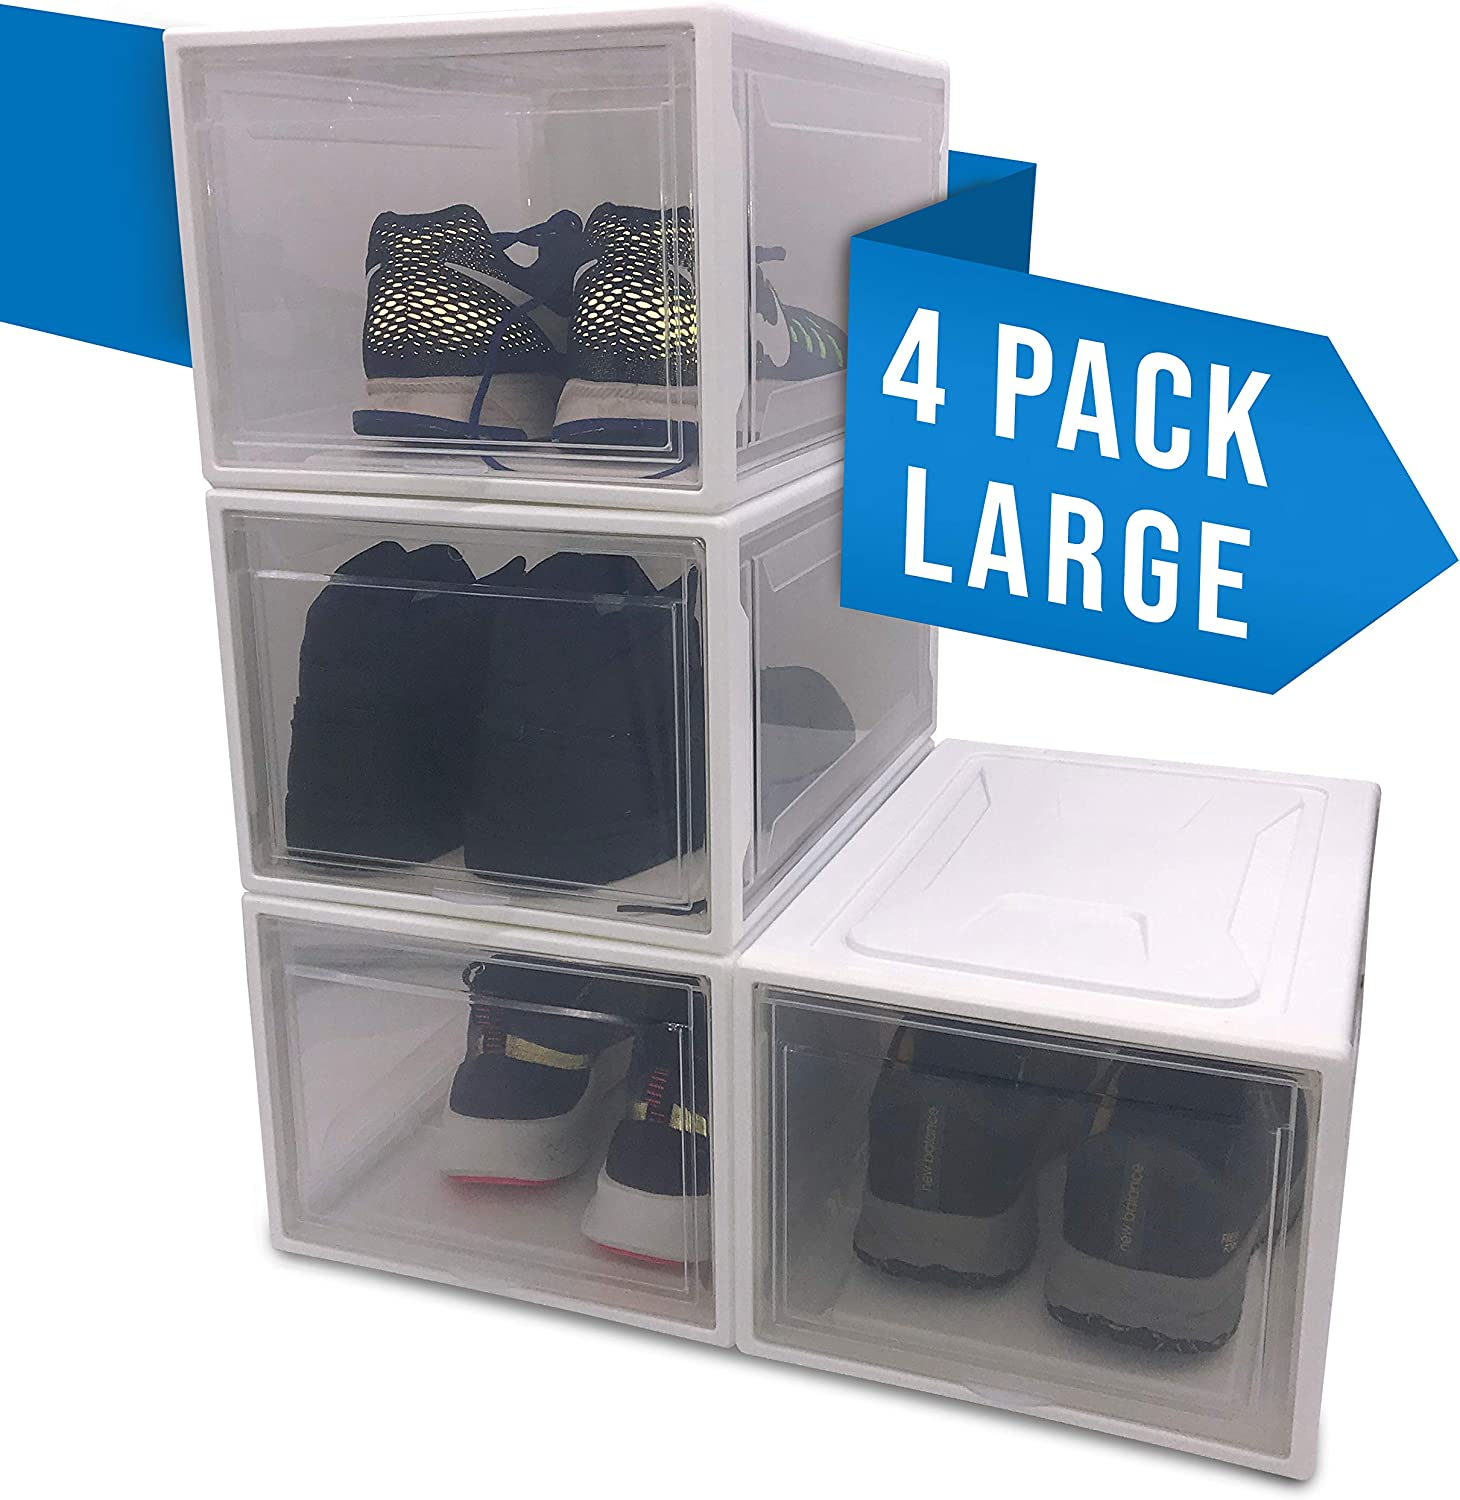 Clear Plastic Sneaker Display Containers X-Large Felicity Simplicity Stackable Shoe Storage Boxes for Men and Women Closet Organizer Shelf 4 Pack